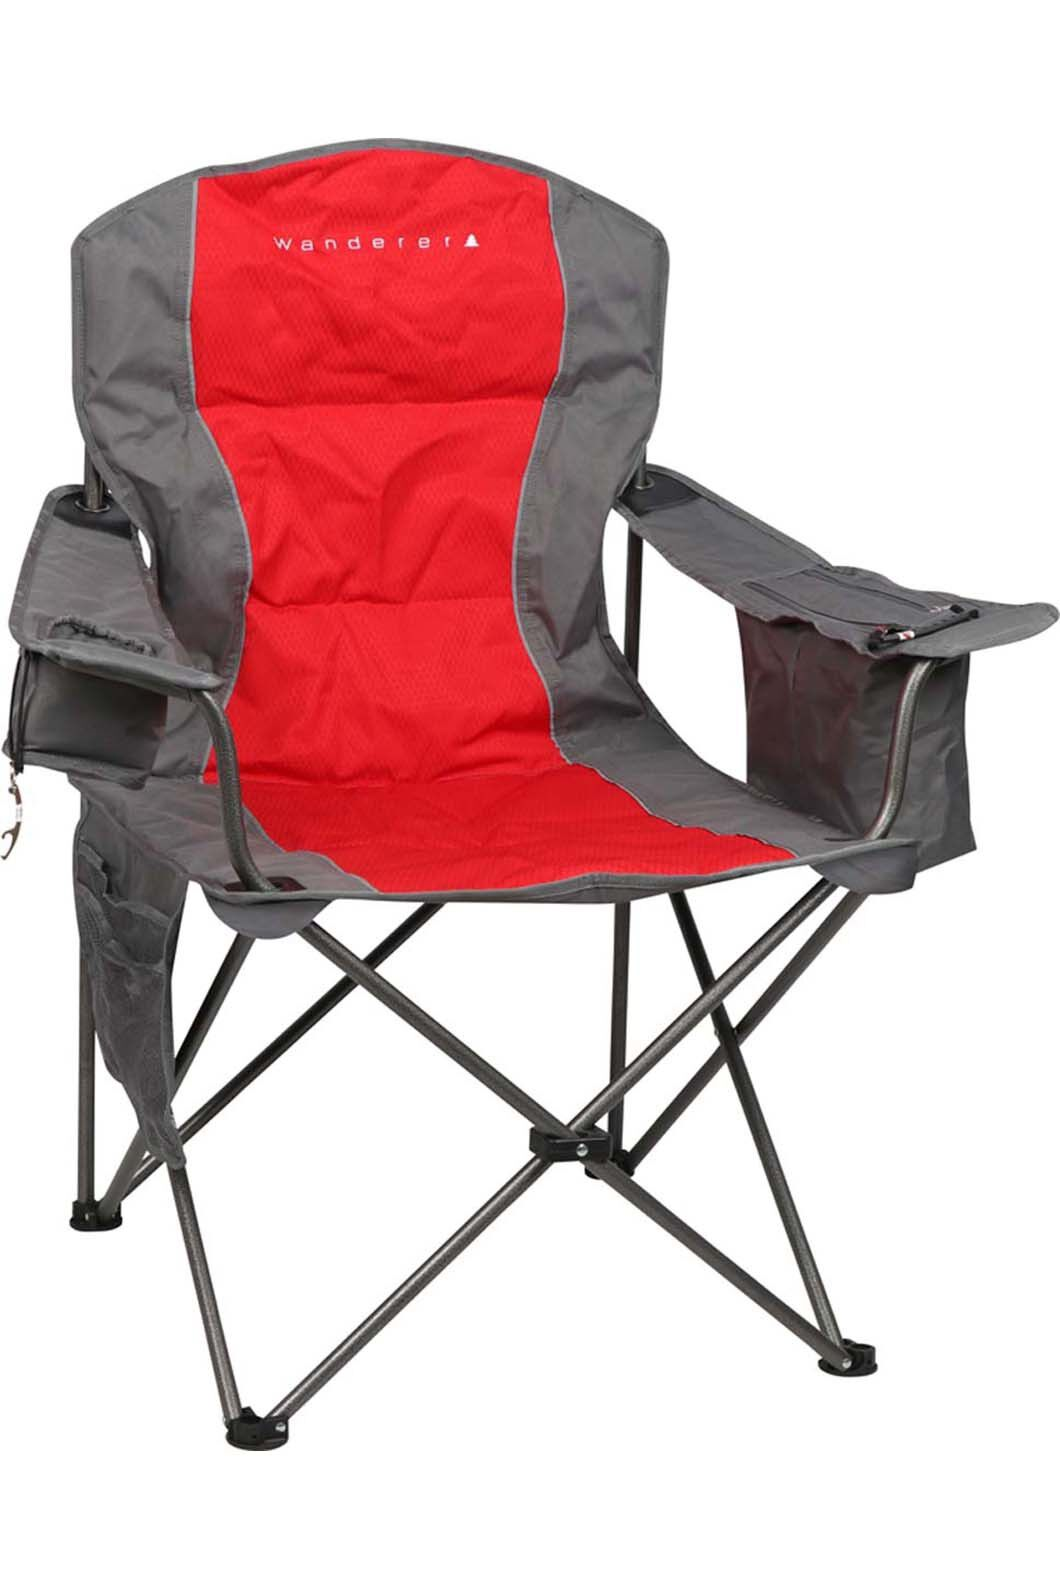 Wanderer Premium Cooler Arm Chair, Red, hi-res